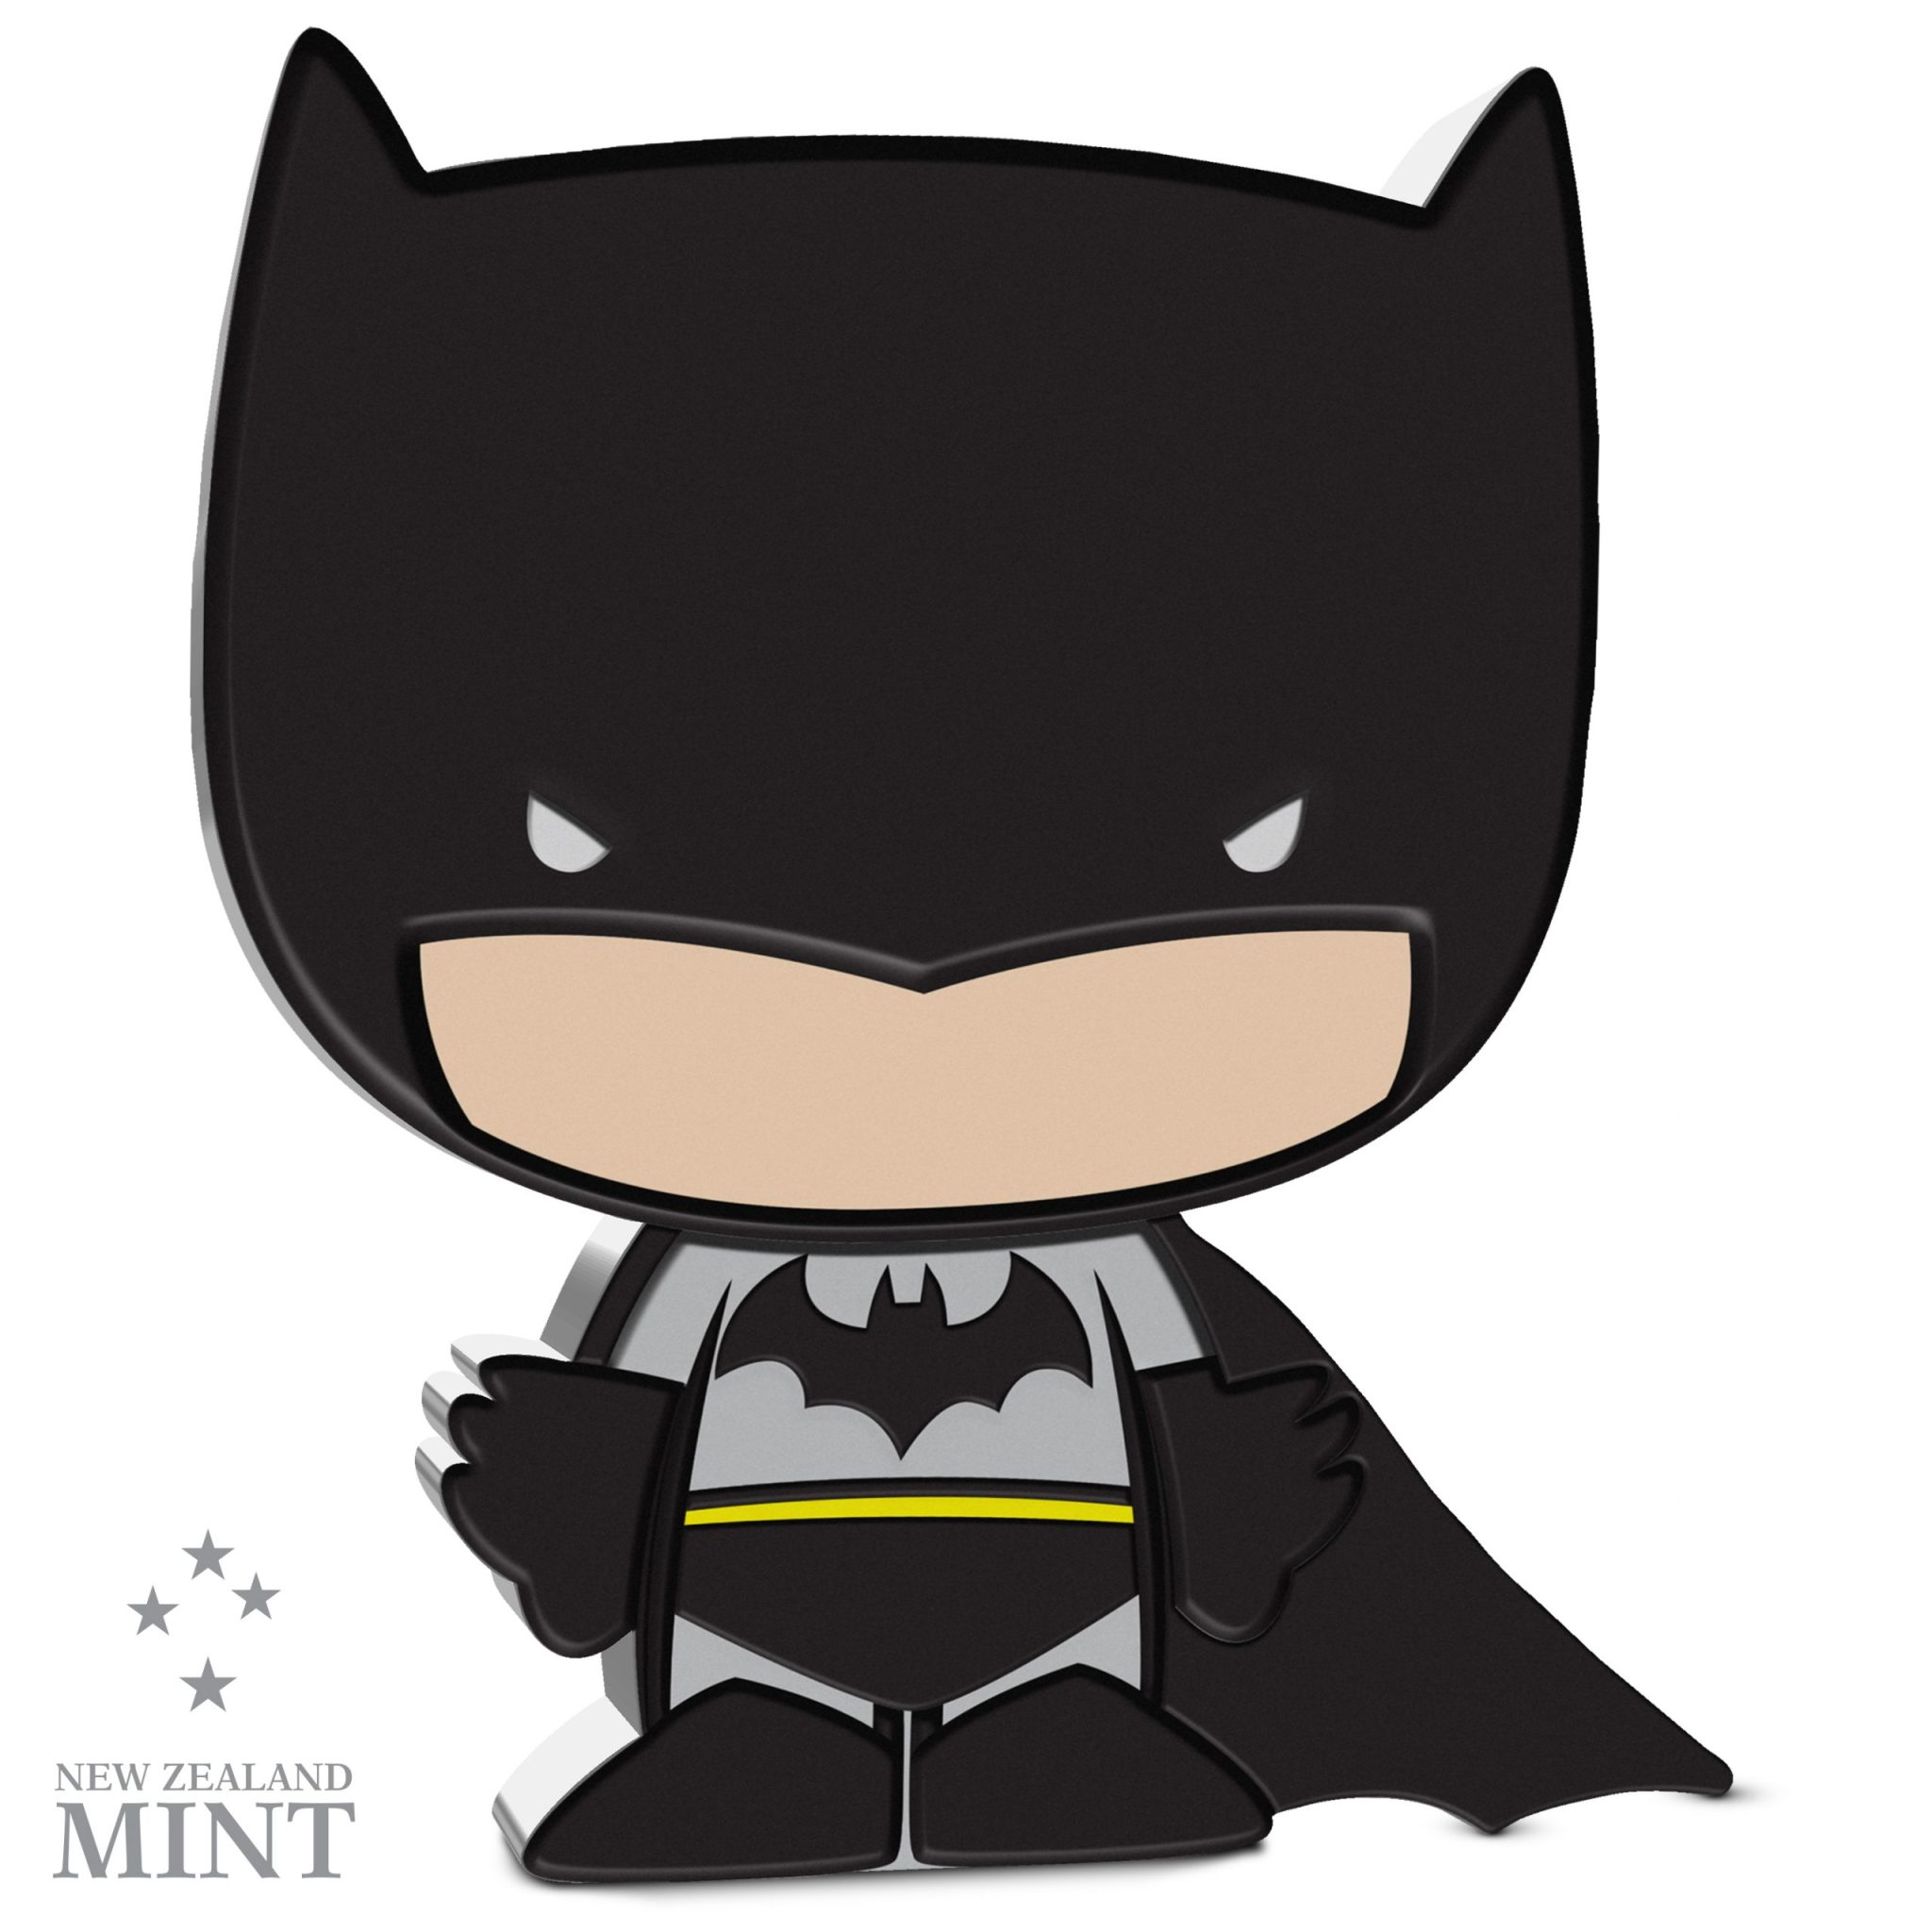 Don't wait to grab this FIRST pure #silvercoin in our #ChibiCoin Collection! Showcasing #DCComics #BATMAN. Only 2,000 available from @NZMint